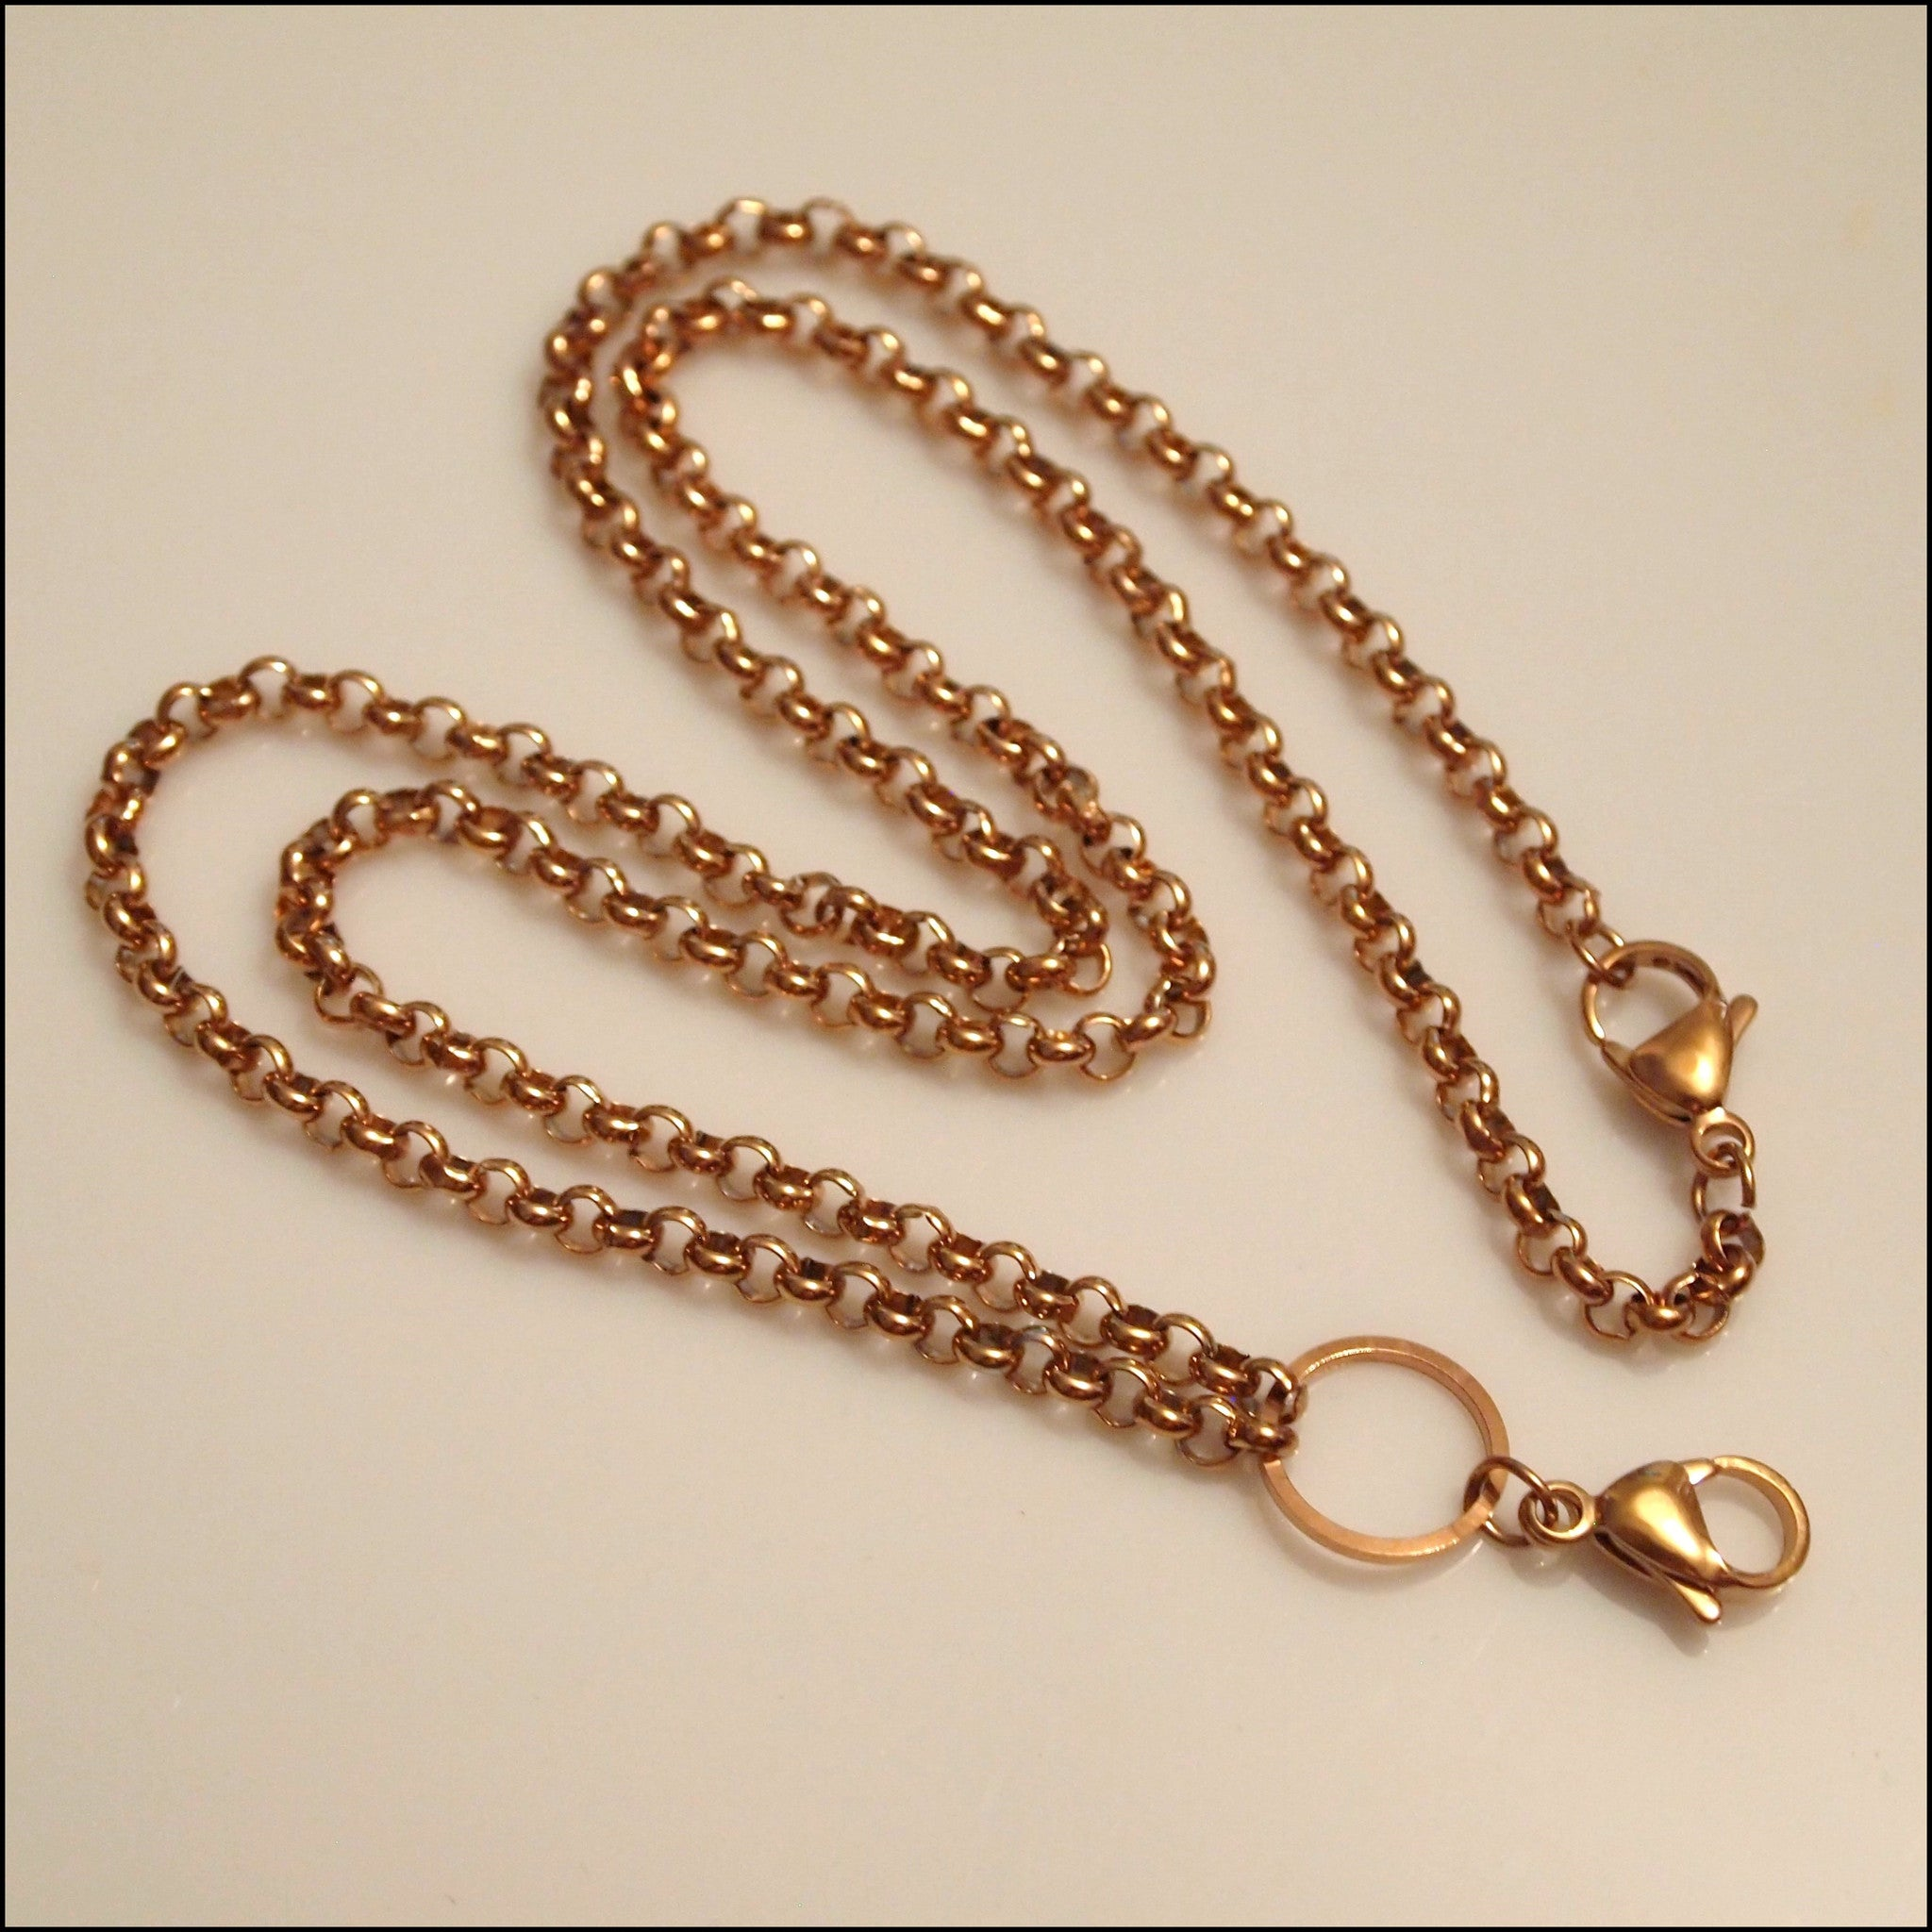 Rose Gold Rolo Chain for Living Locket - Find Something Special